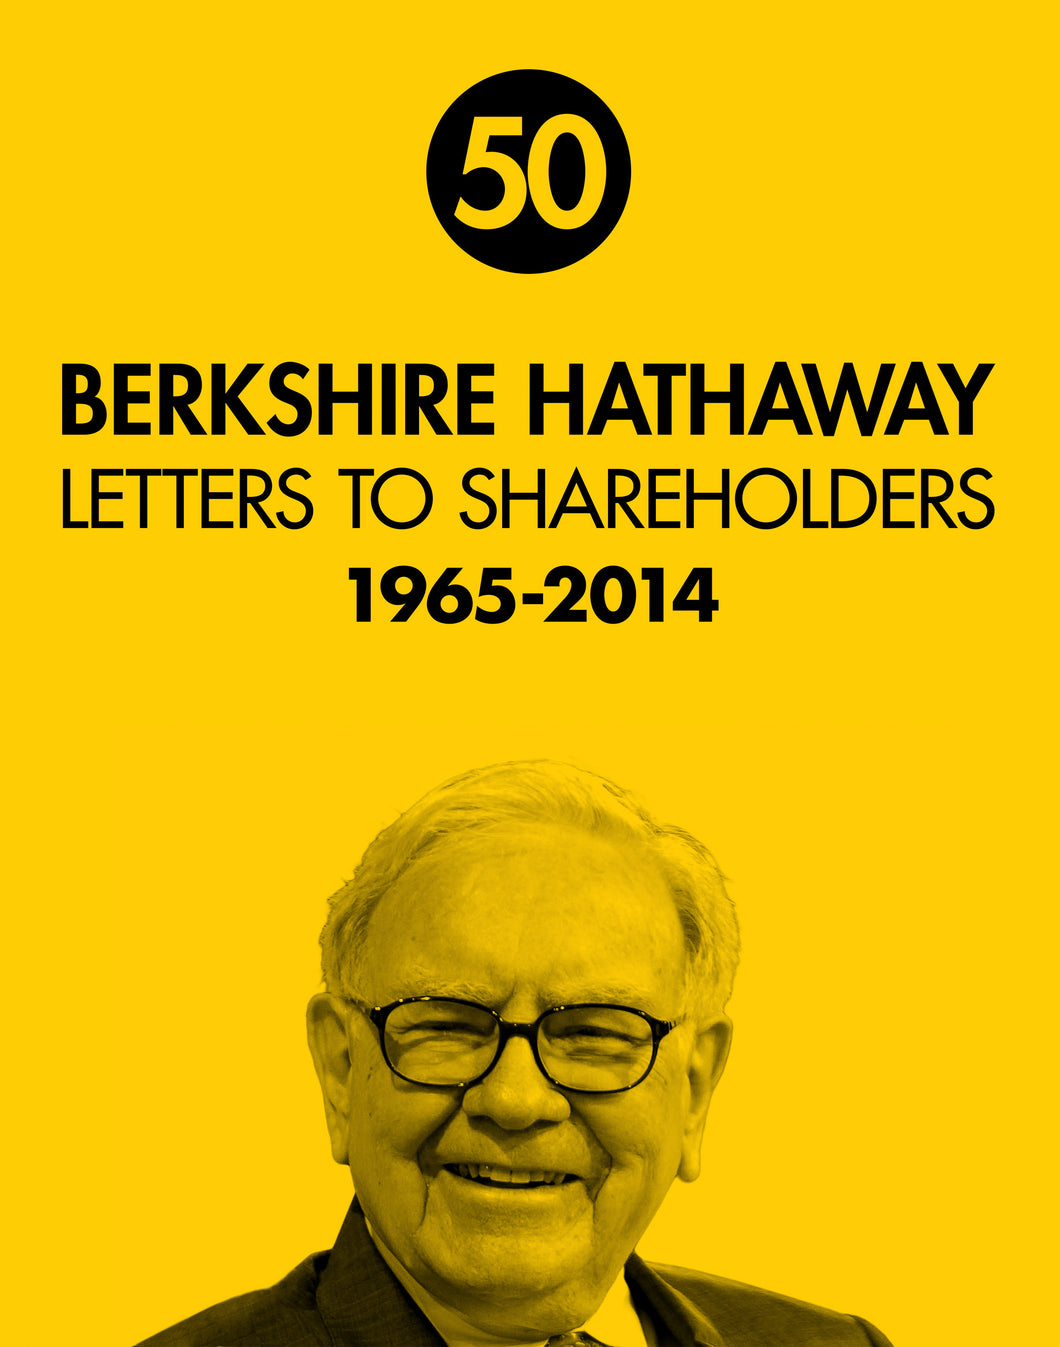 Berkshire Hathaway Letters to Shareholders 50th